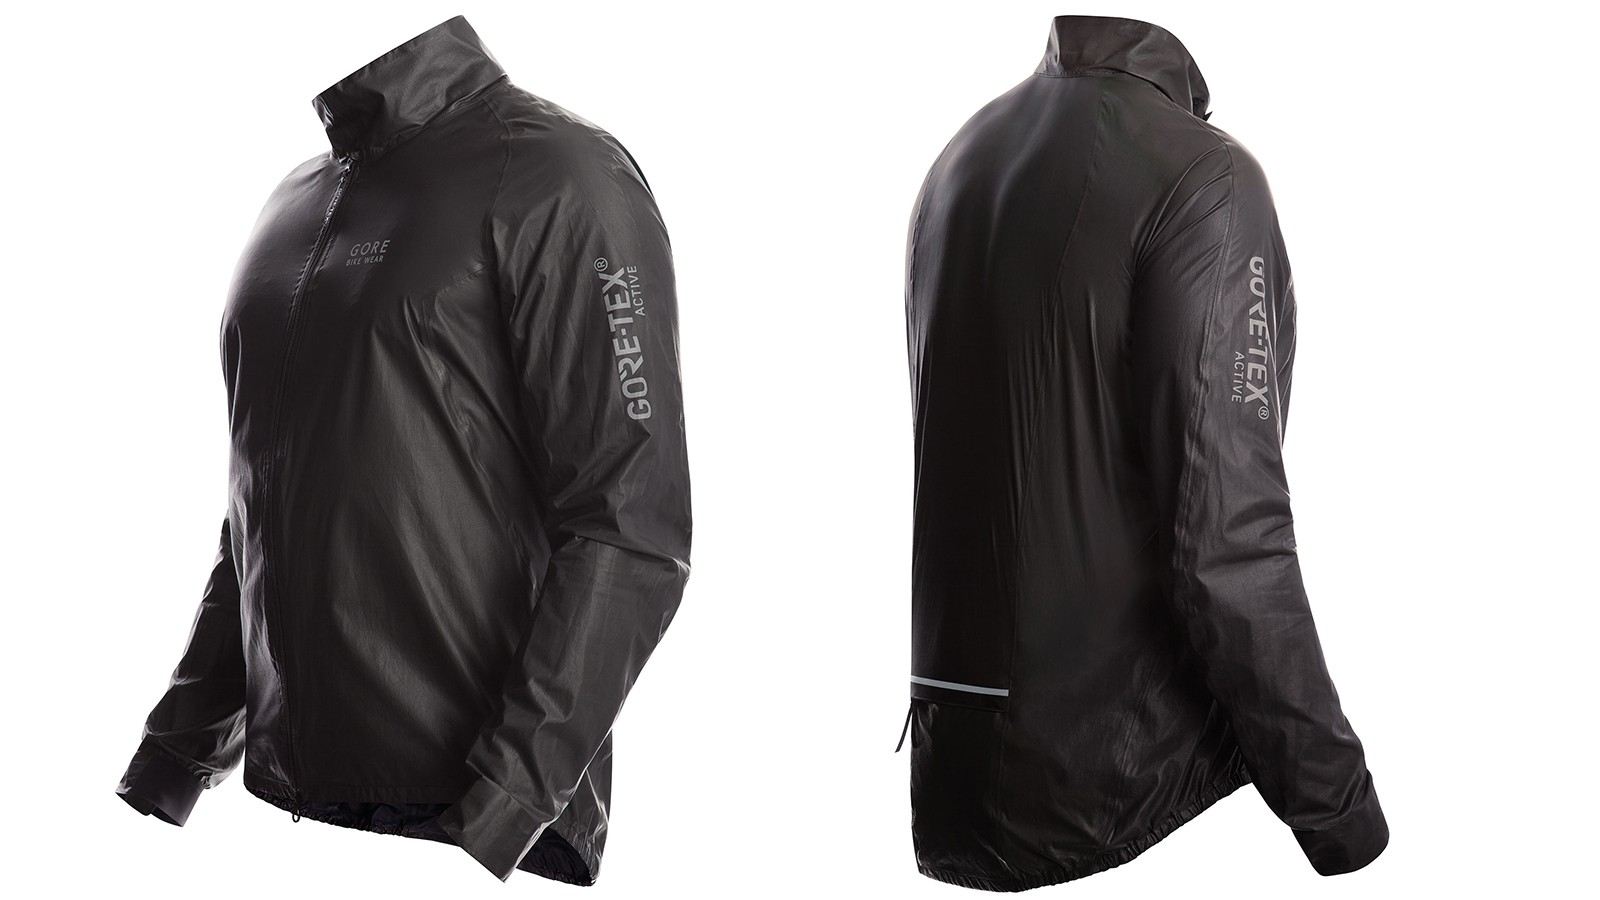 The new Gore One 1985 is the latest hyper-light rain jacket with Gore's Active fabric